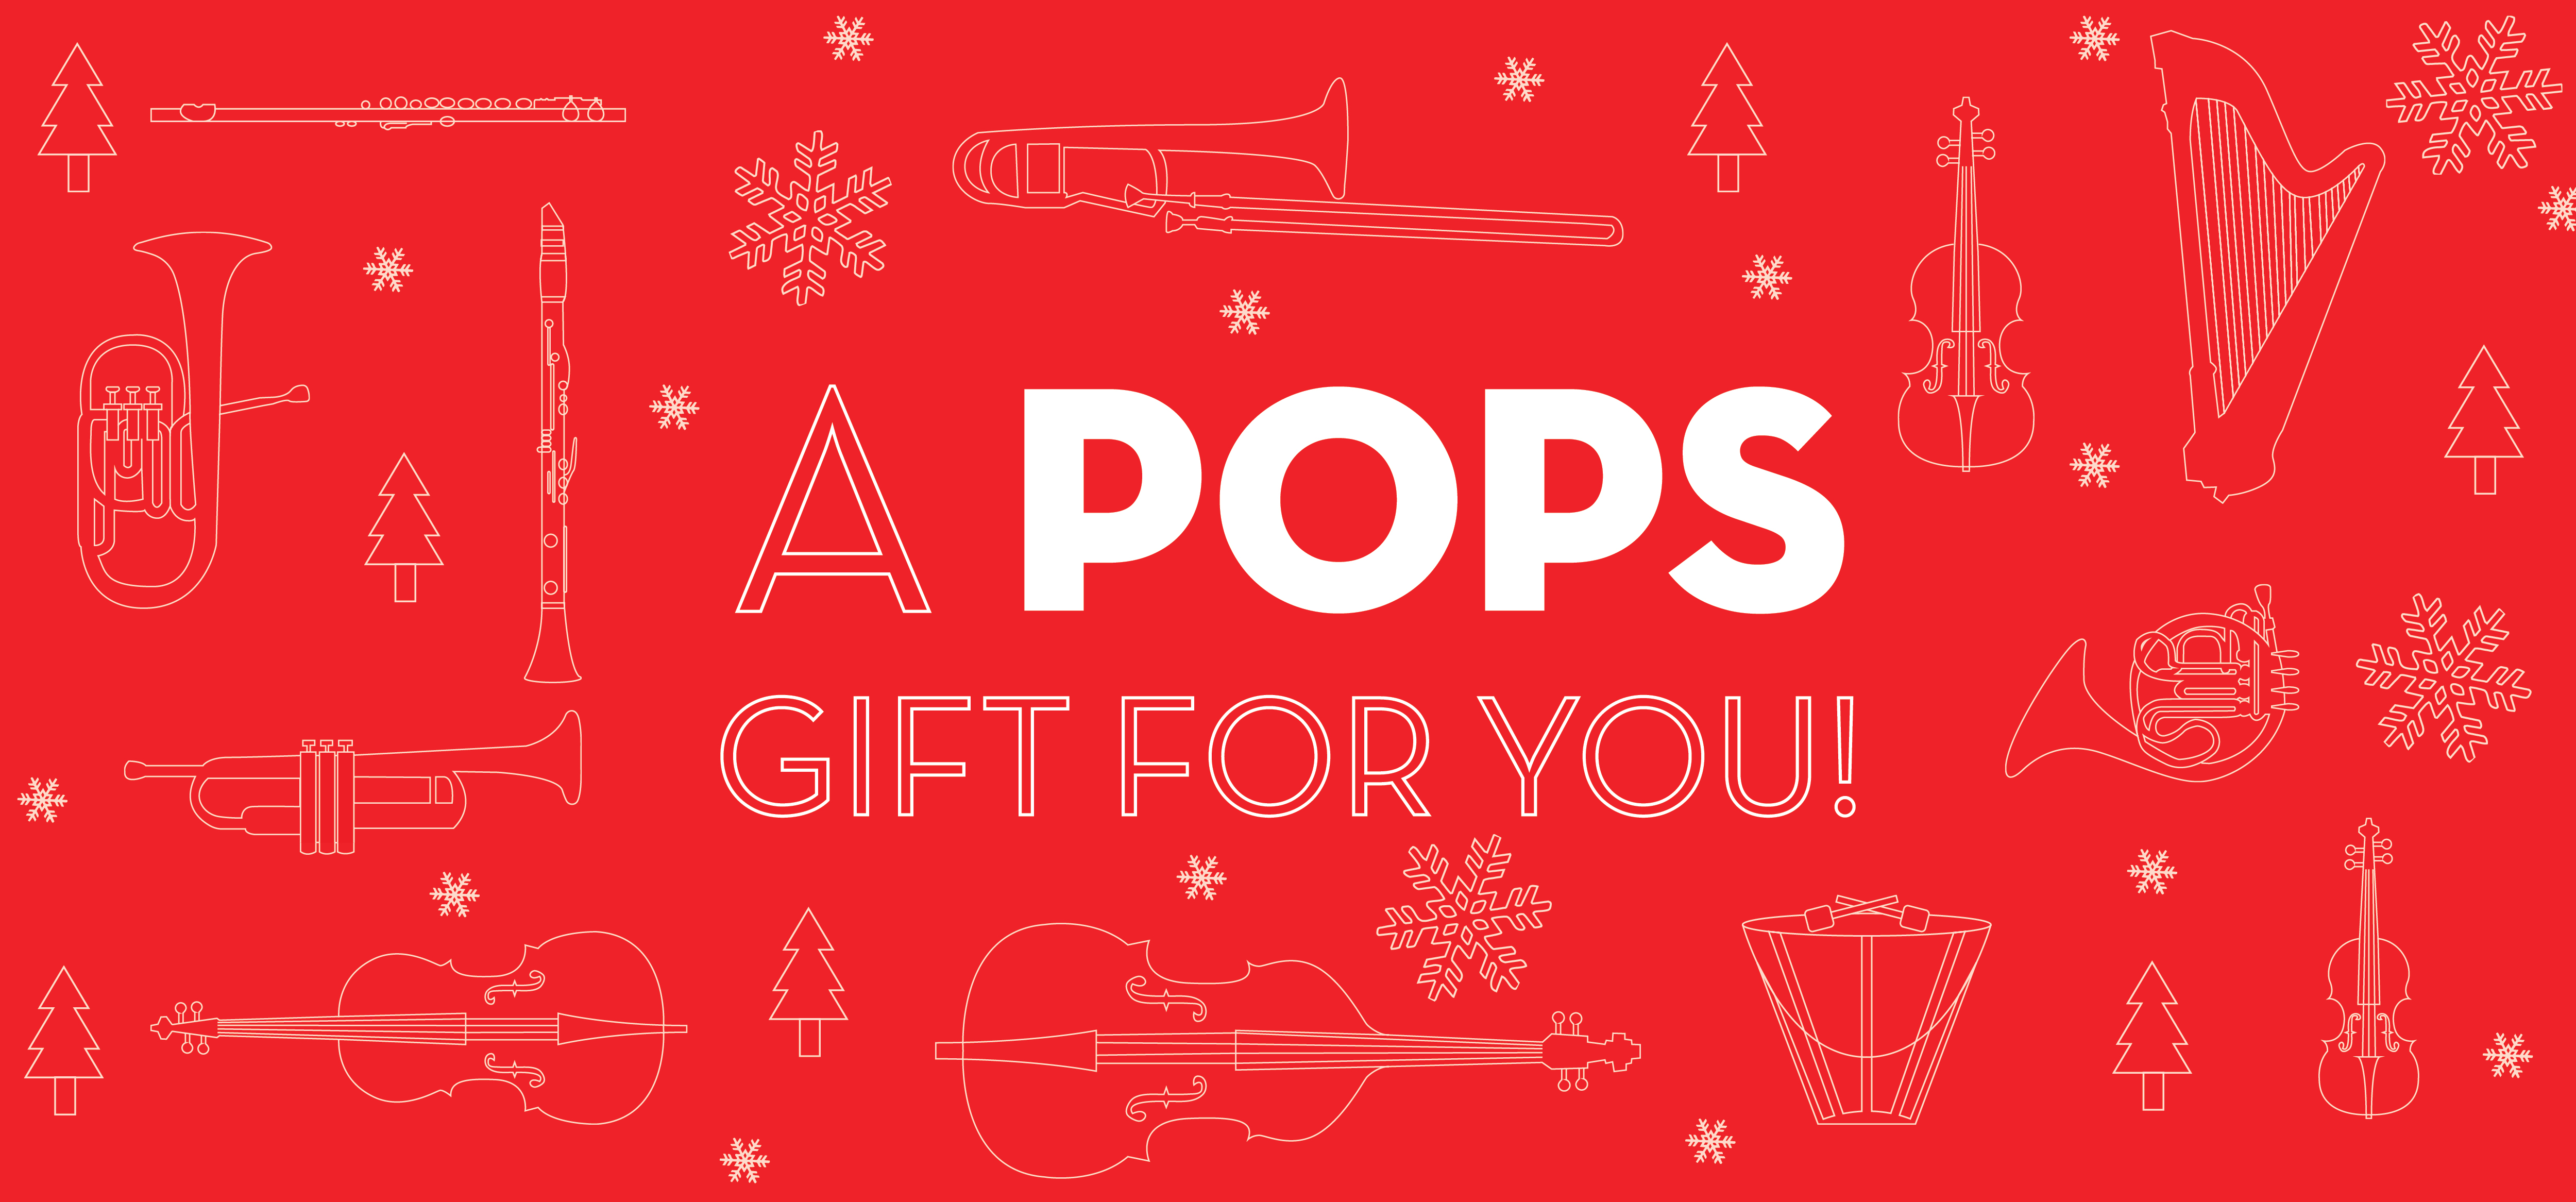 Give the Gift of the POPS